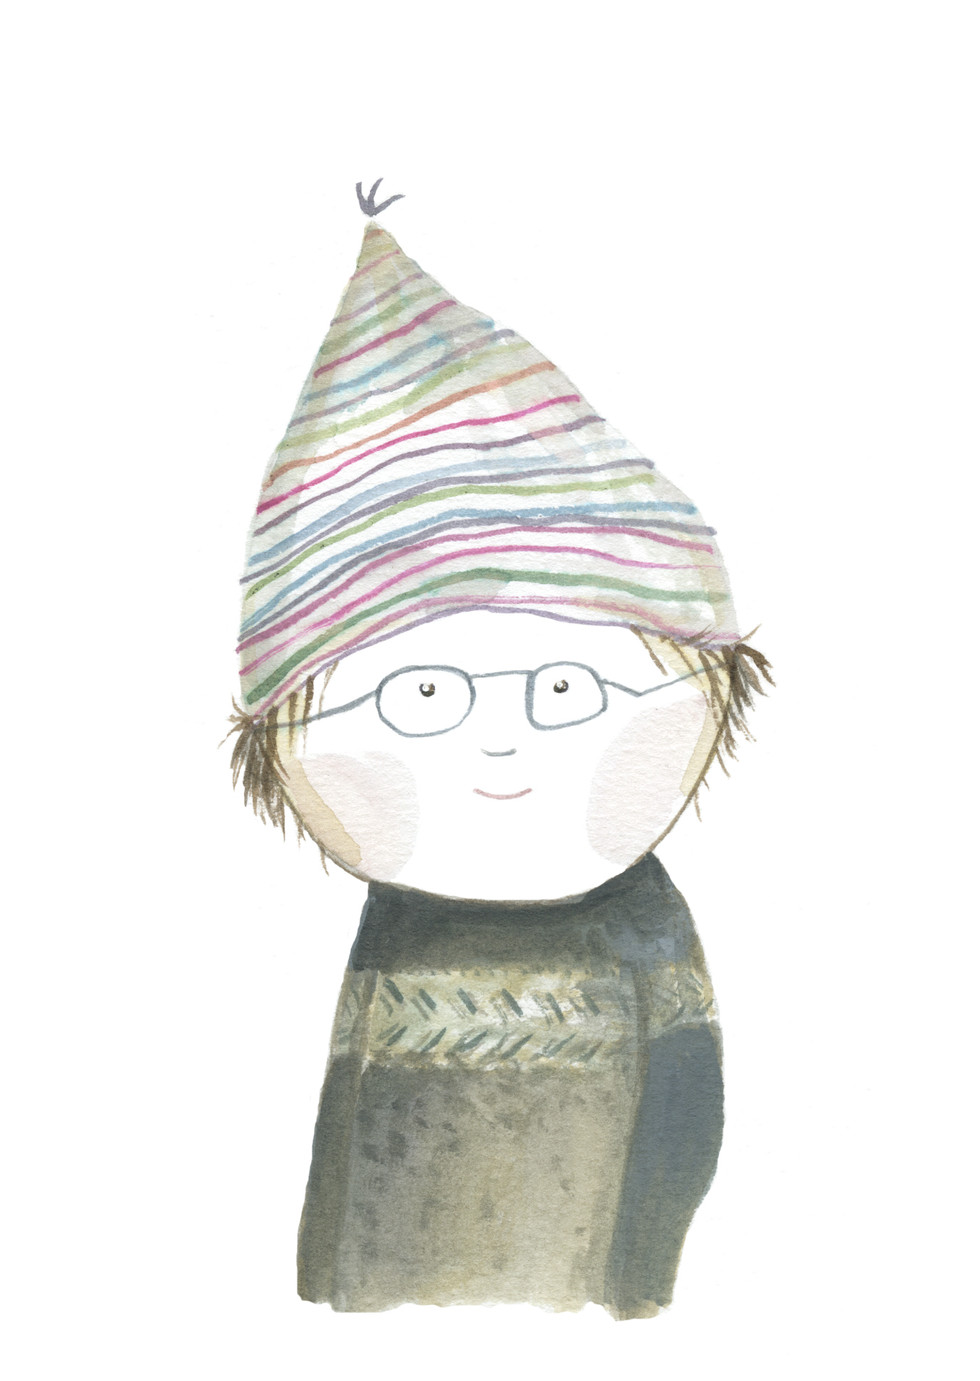 'Bent-Ole, Boy With Glasses & Hat'